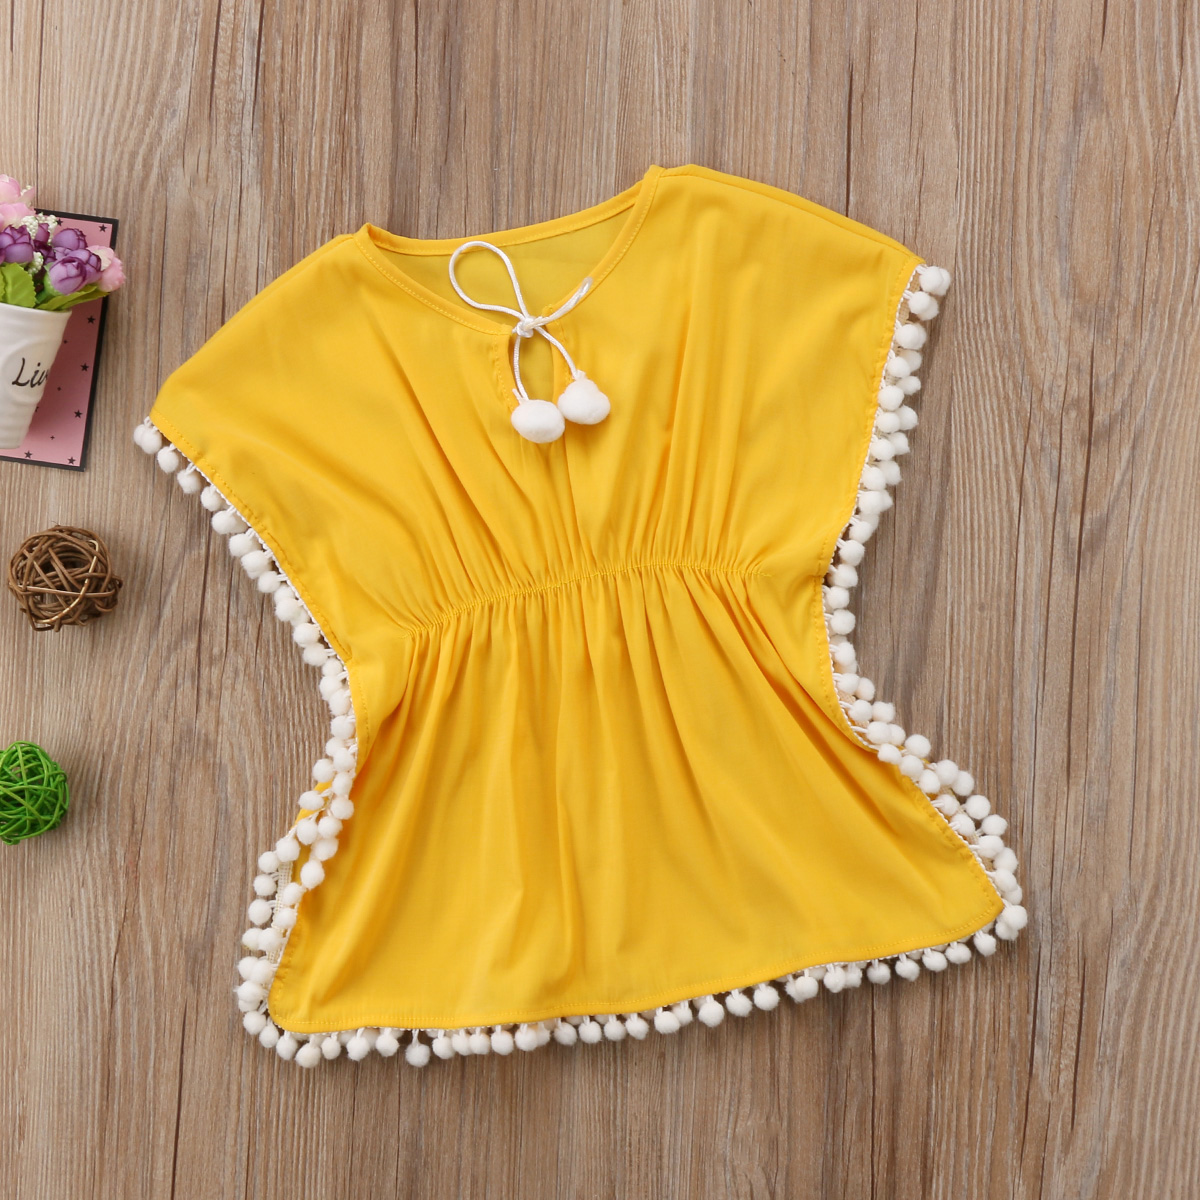 595c7f2d55742 Baby Girl Floral Pompom Tassel Sun Protection Dress Swim Cover-Ups Rash  Guard Dress